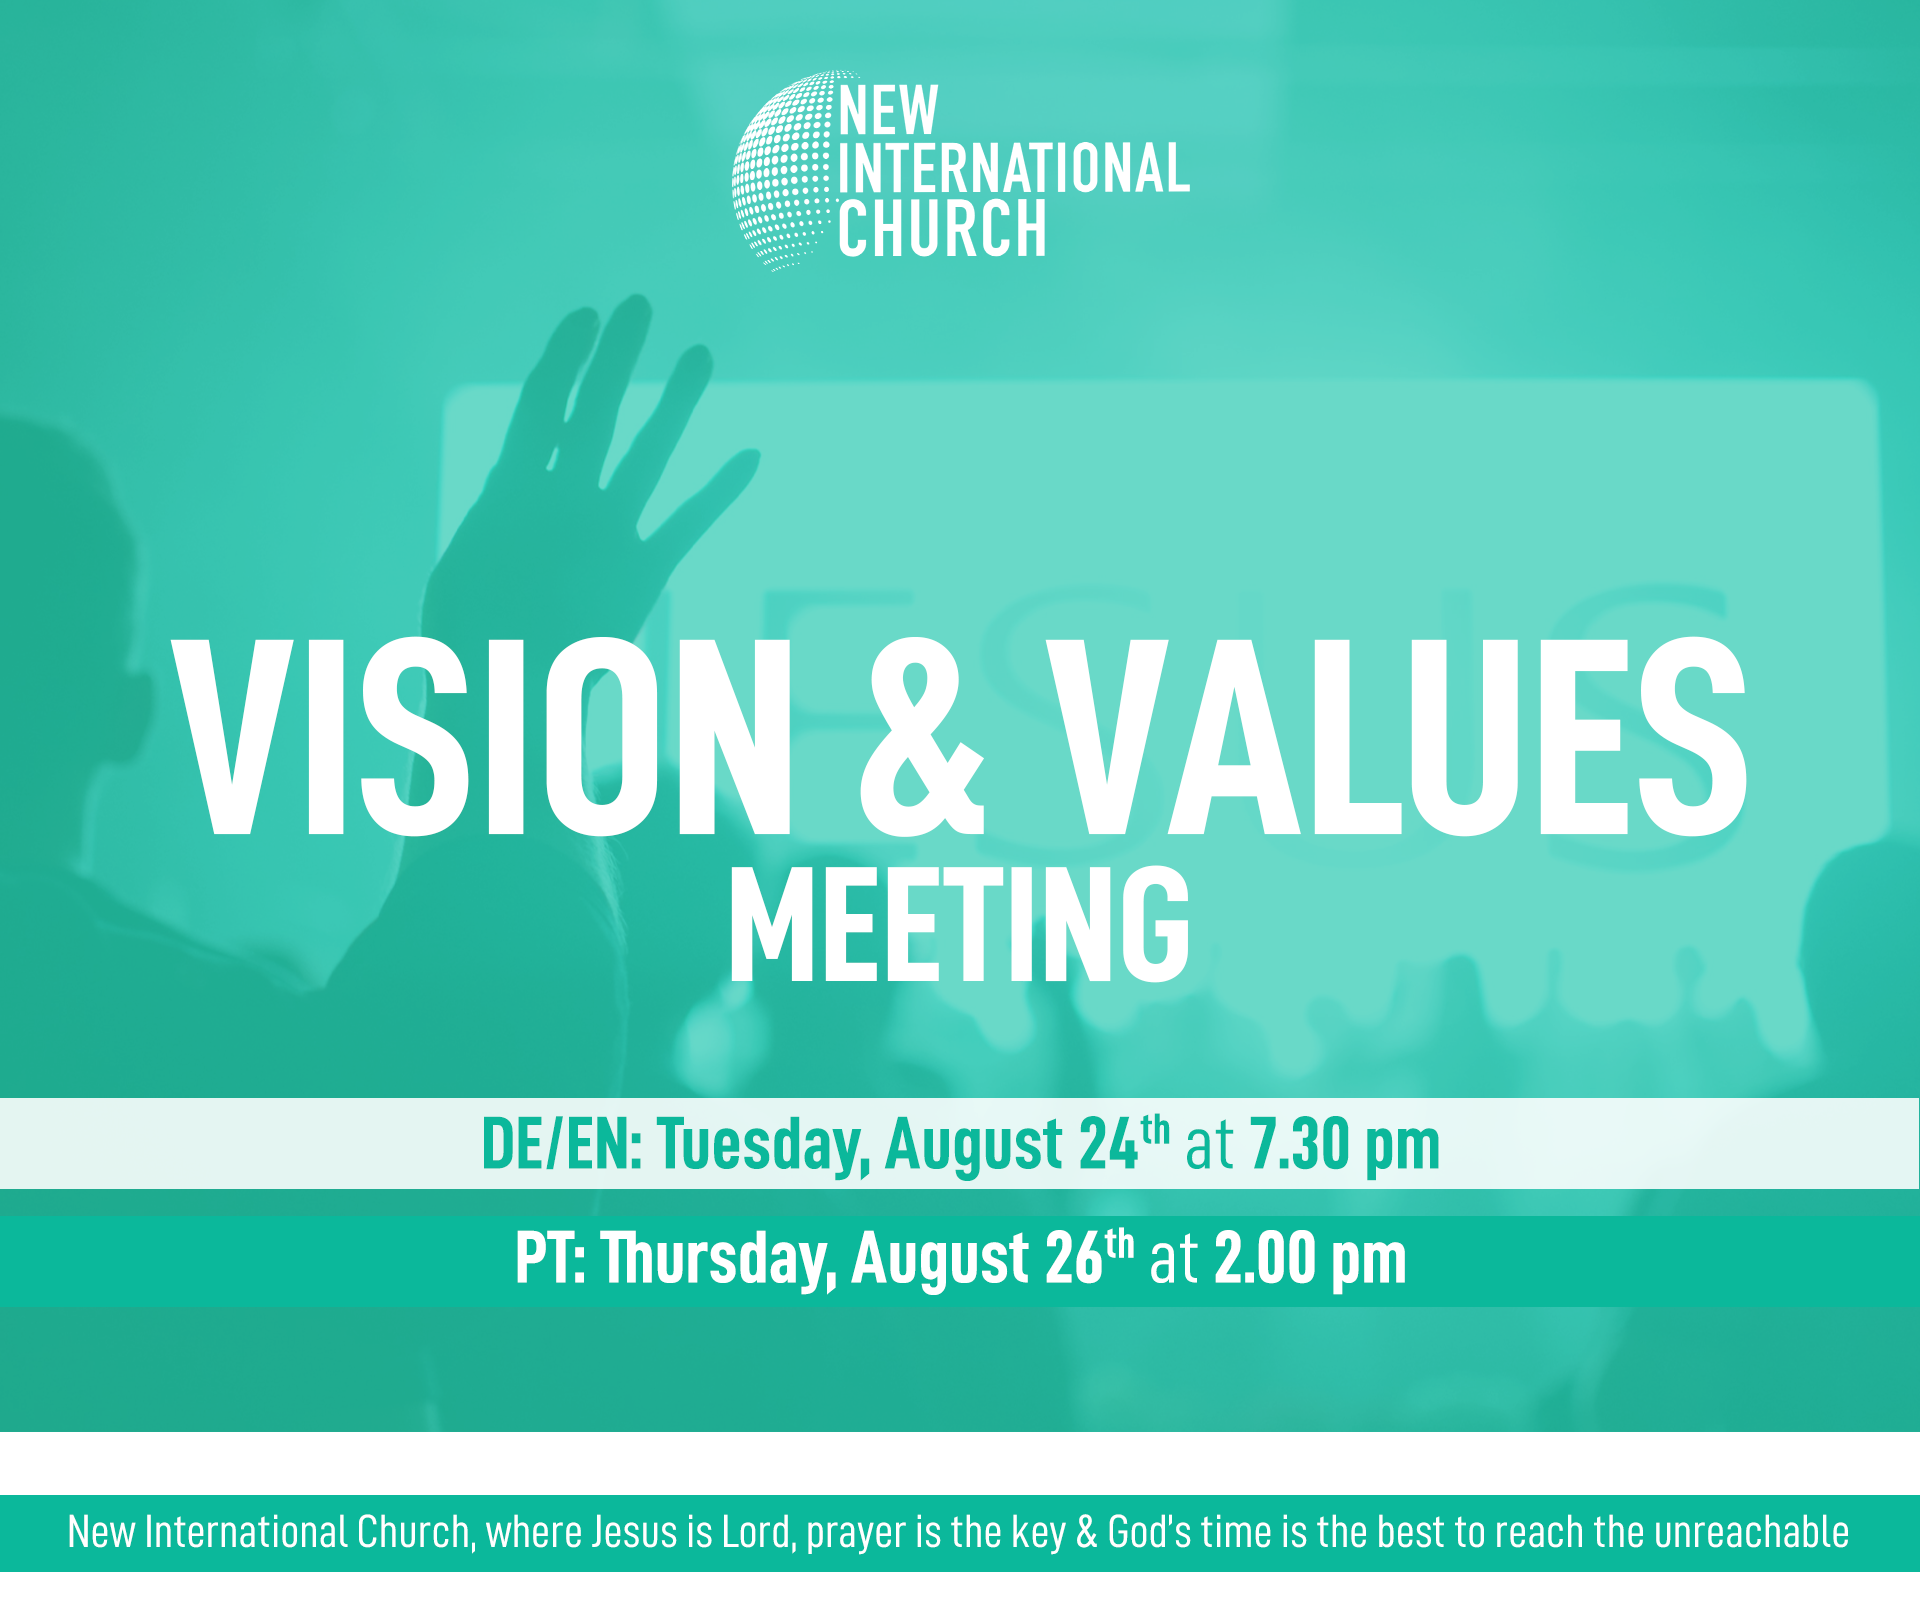 Vision & Values Meeting